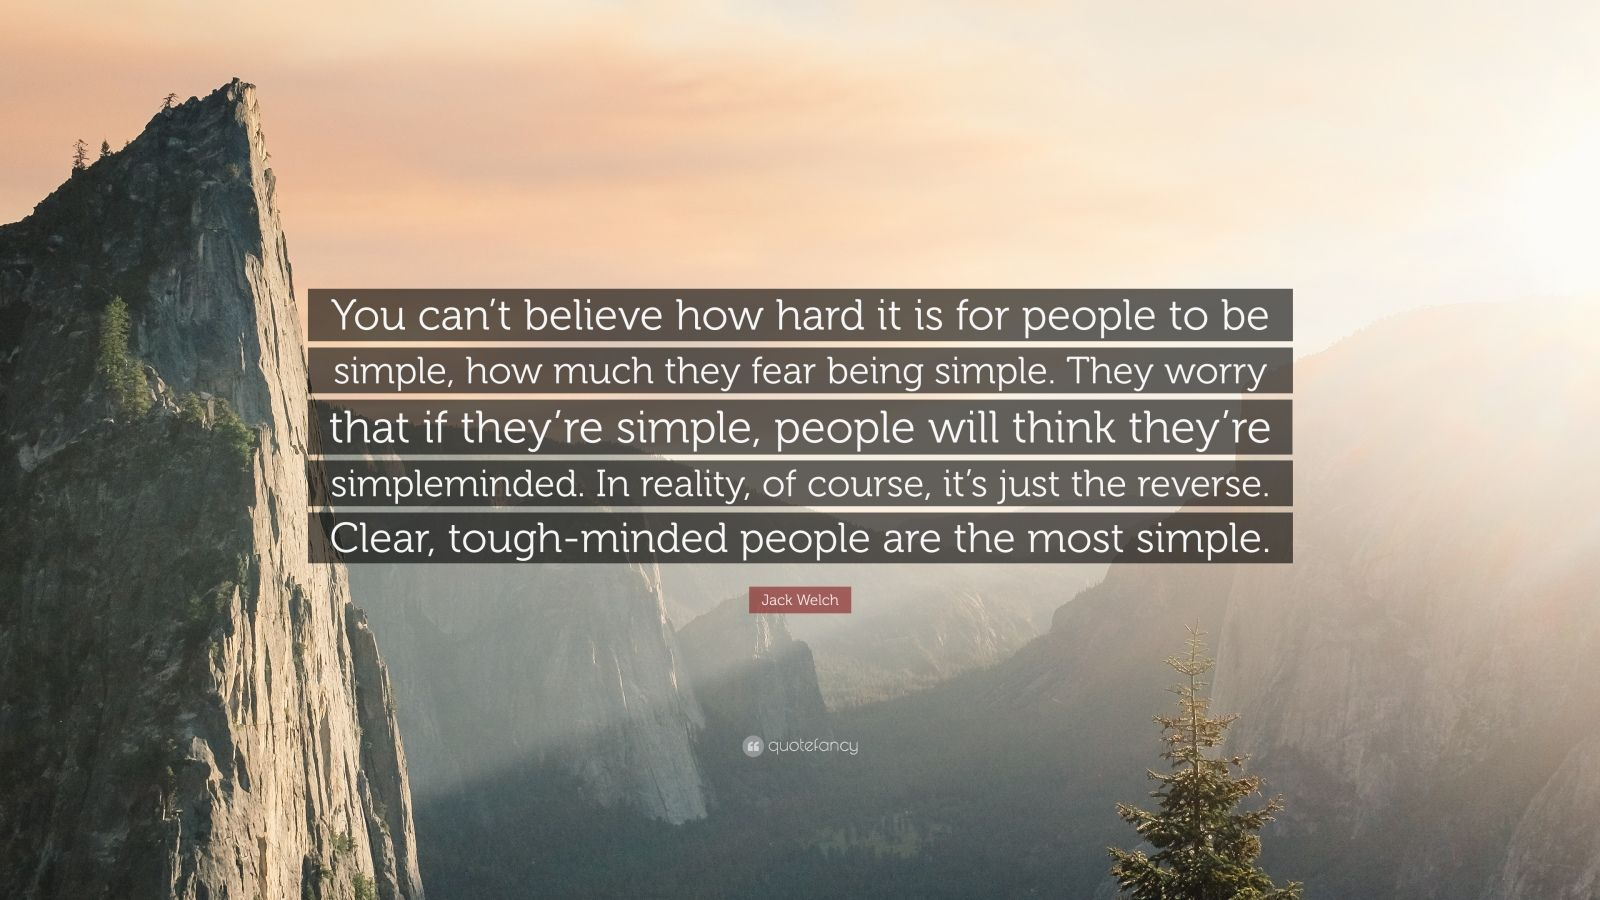 "Jack Welch Quote: ""You can't believe how hard it is for people to be simple, how much they fear being simple. They worry that if they're simple, people will think they're simpleminded. In reality, of course, it's just the reverse. Clear, tough-minded people are the most simple."""